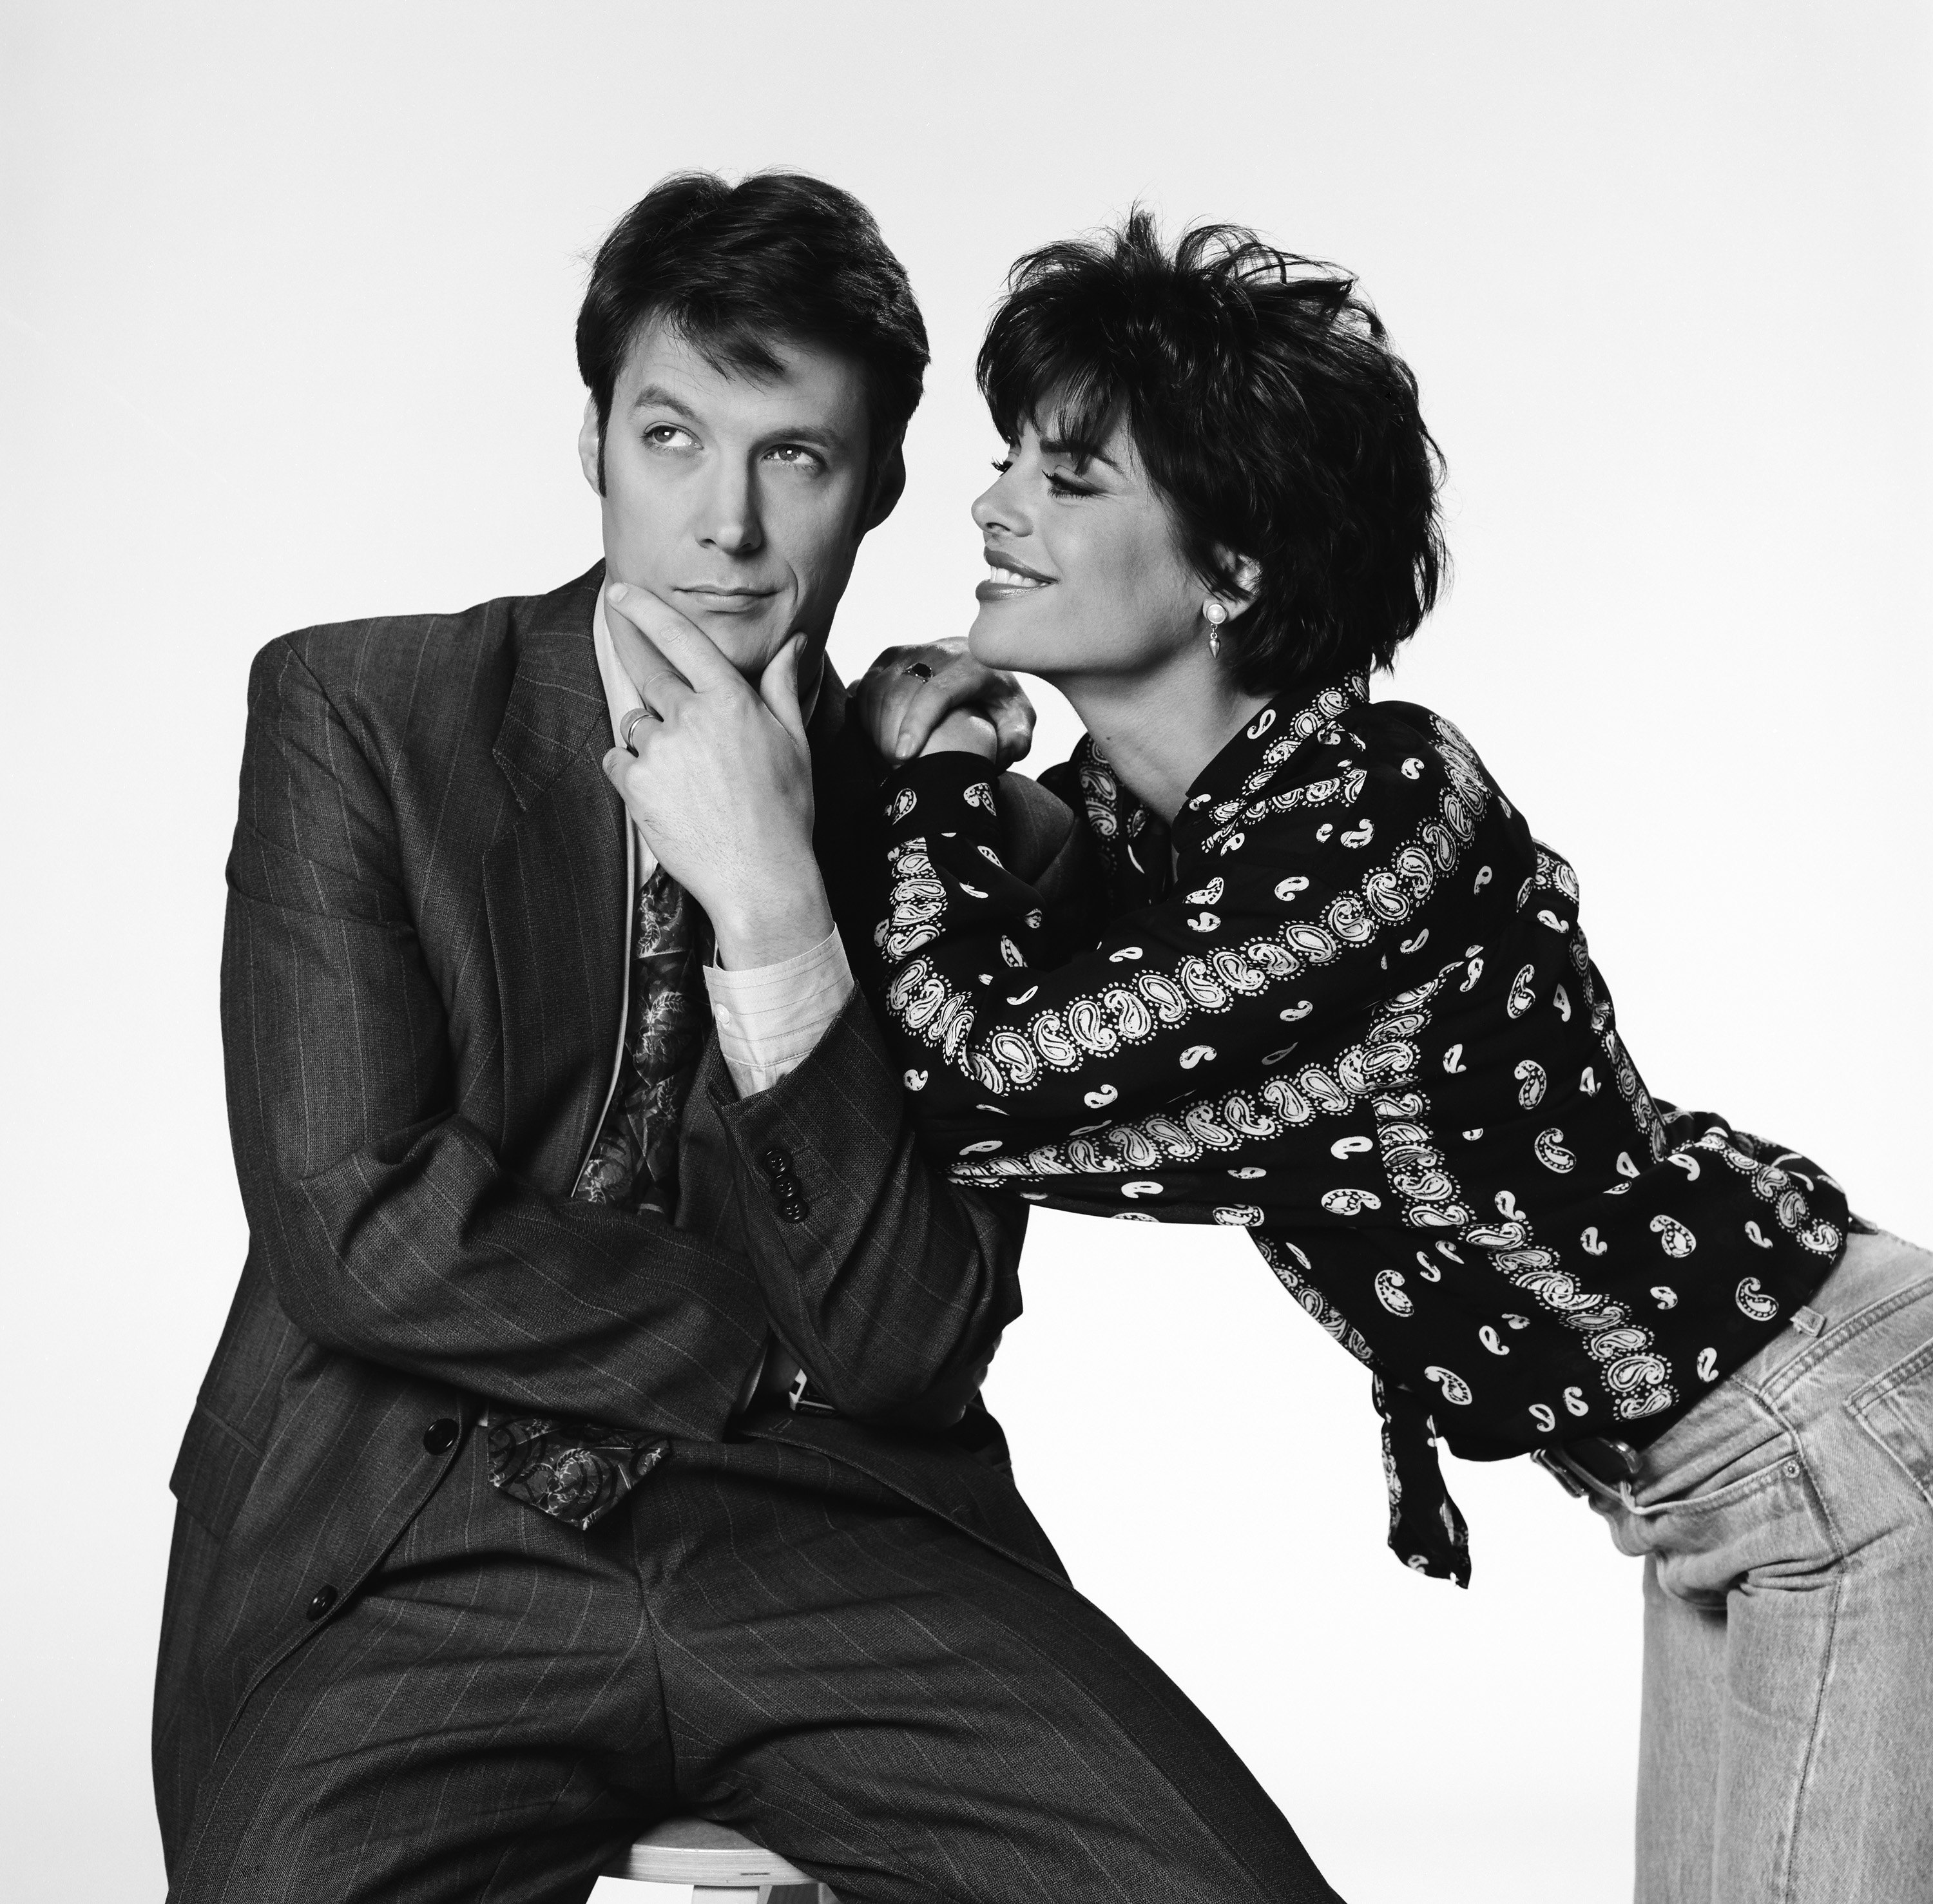 DAYS OF OUR LIVES -- Season 28 -- Pictured: (l-r) Matthew Ashford as Jack Deveraux, Lisa Rinna as Billie Reed -- Photo by: Gary Null/NBC/NBCU Photo Bank